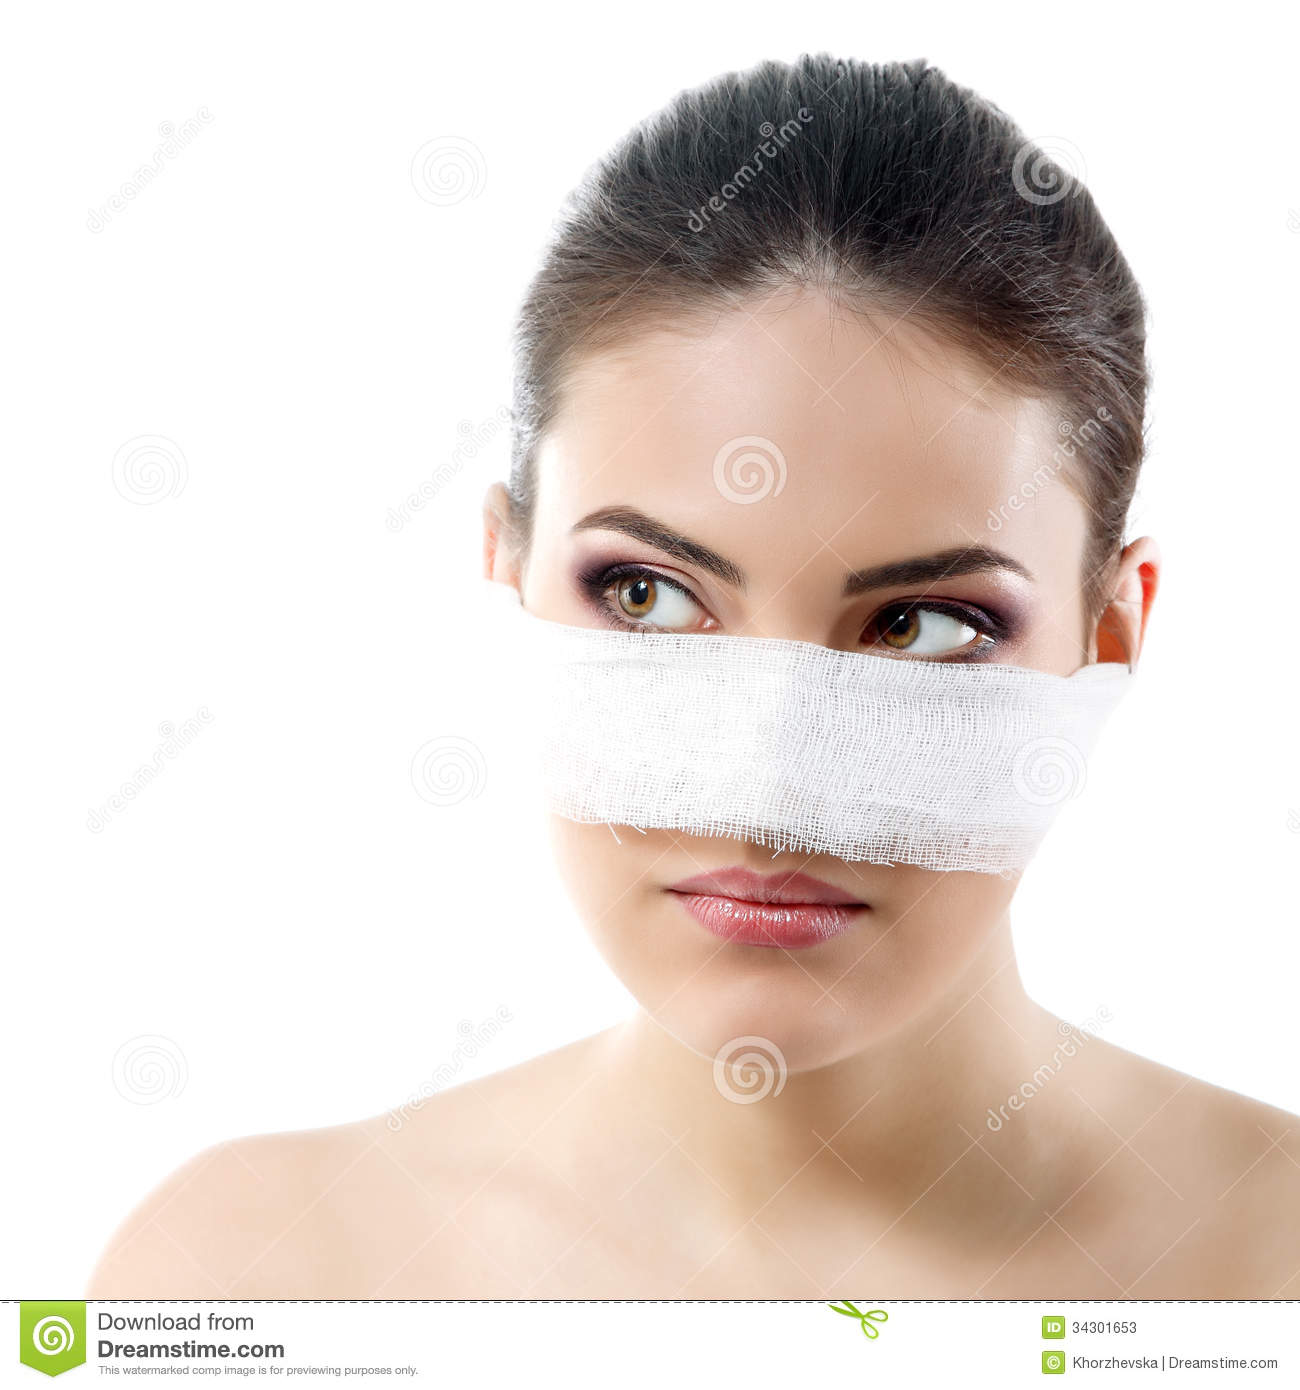 how to bandage nose cut